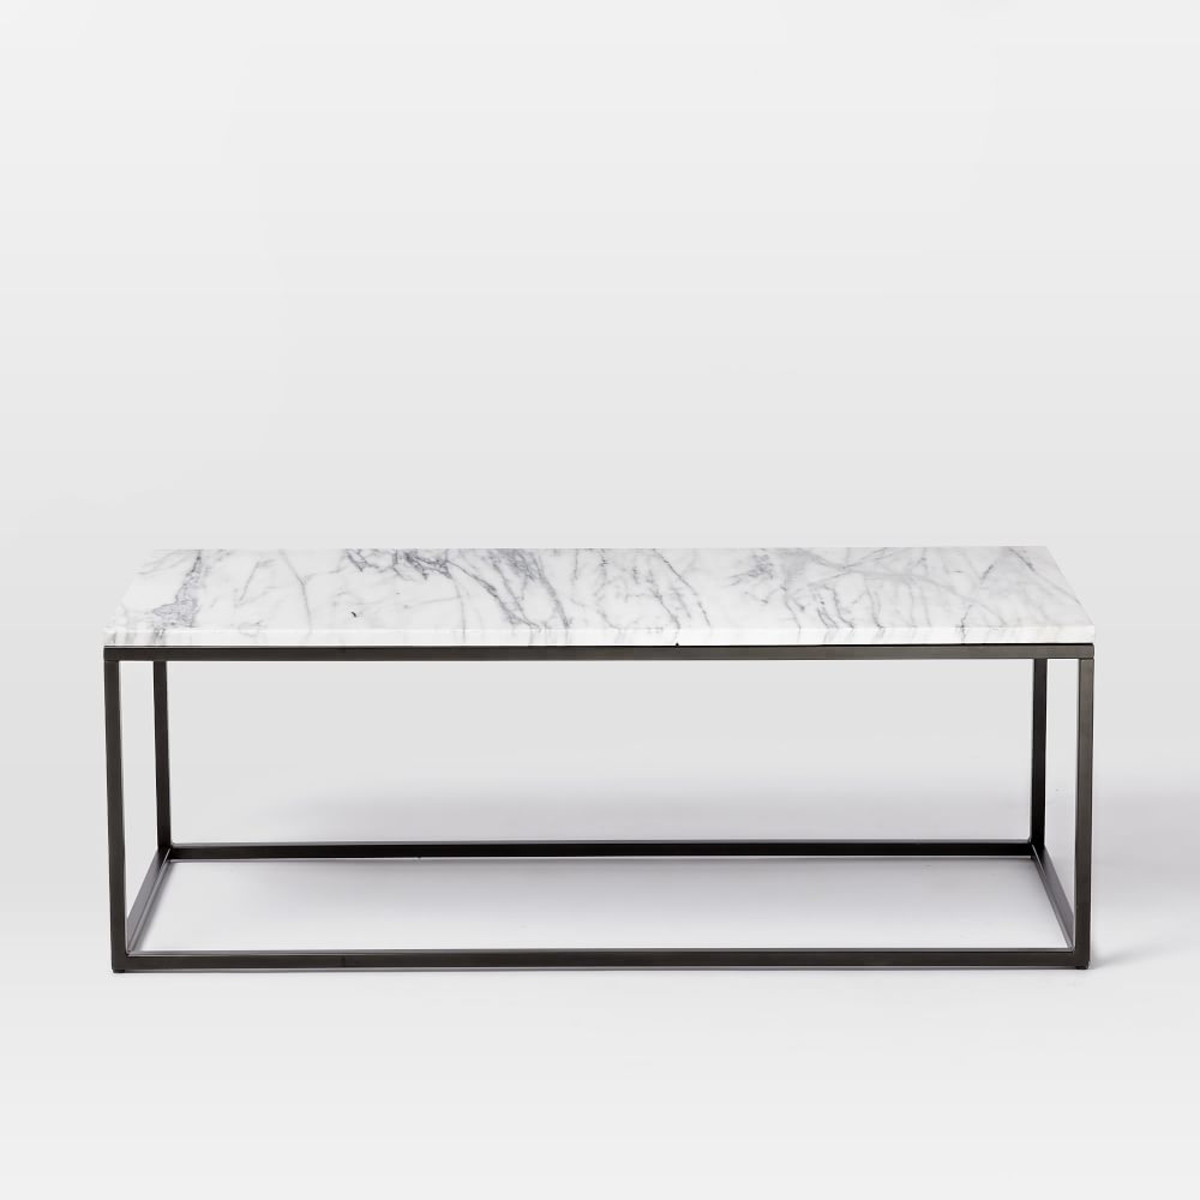 the super free target black side table mira road coffee remarkable marble design dining box frame accent second hand corner kitchen ikea shelf entry console christmas paper